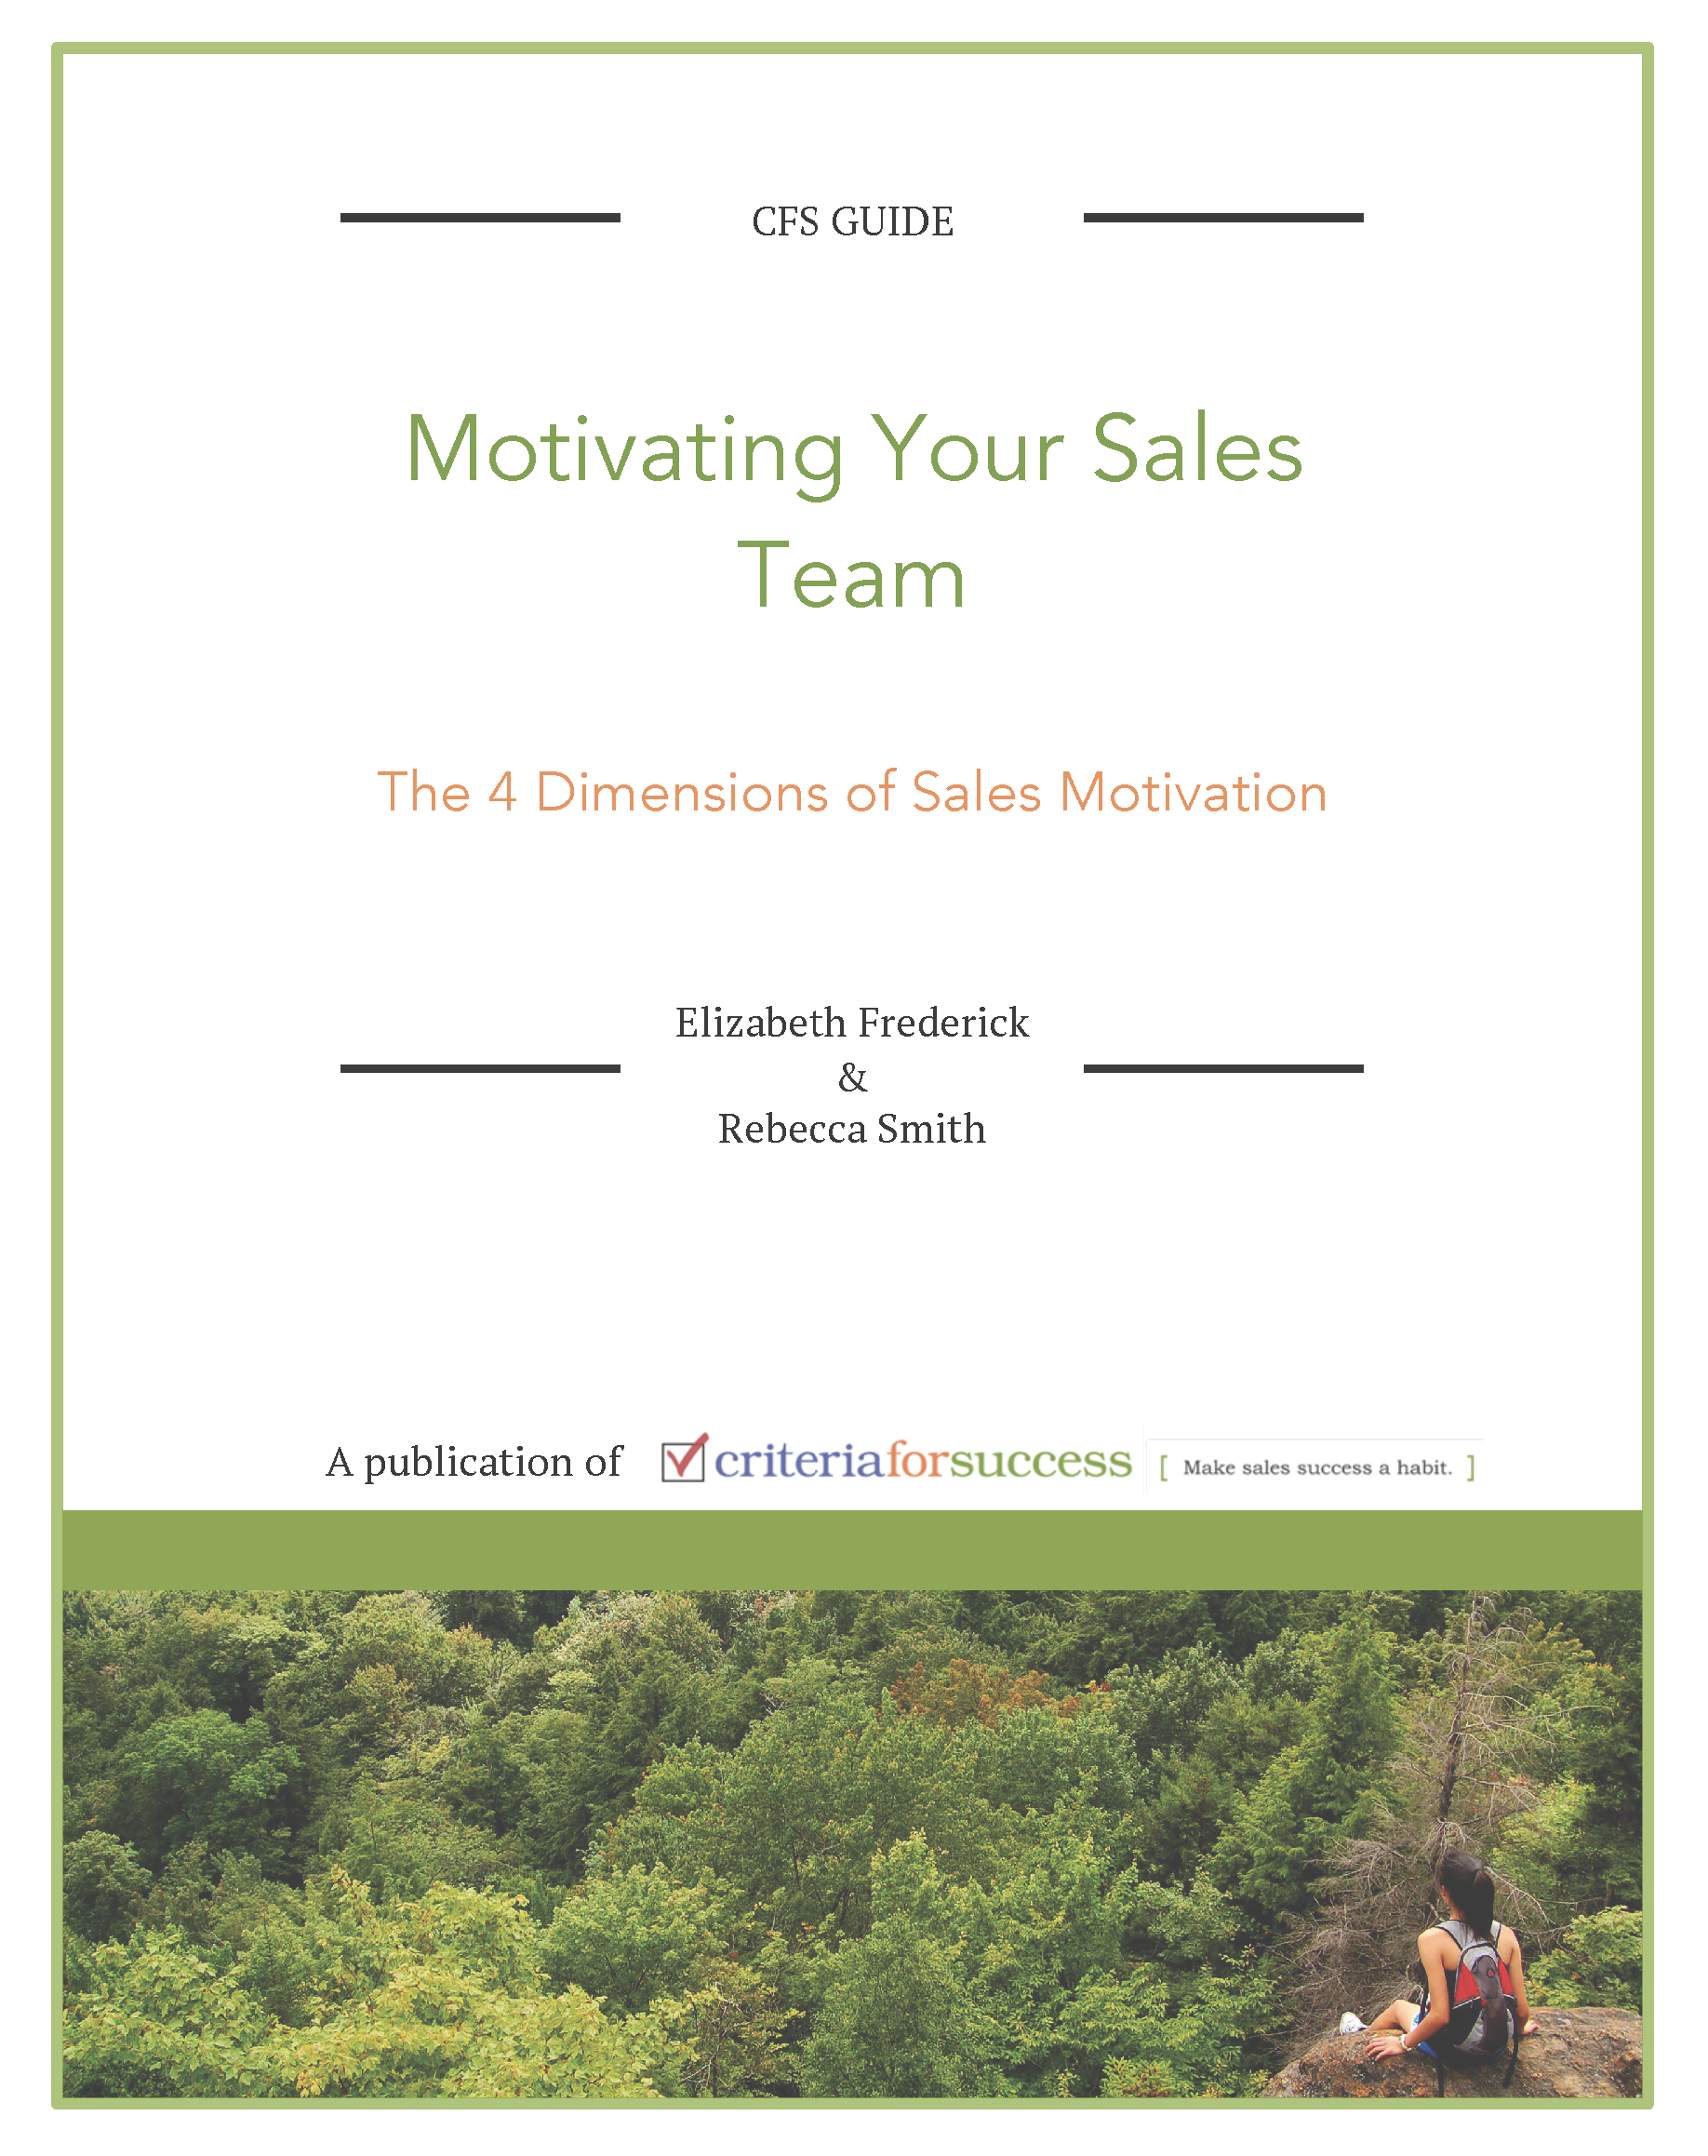 CFS_eBook_-_Motivating_Your_Sales_Team_Cover